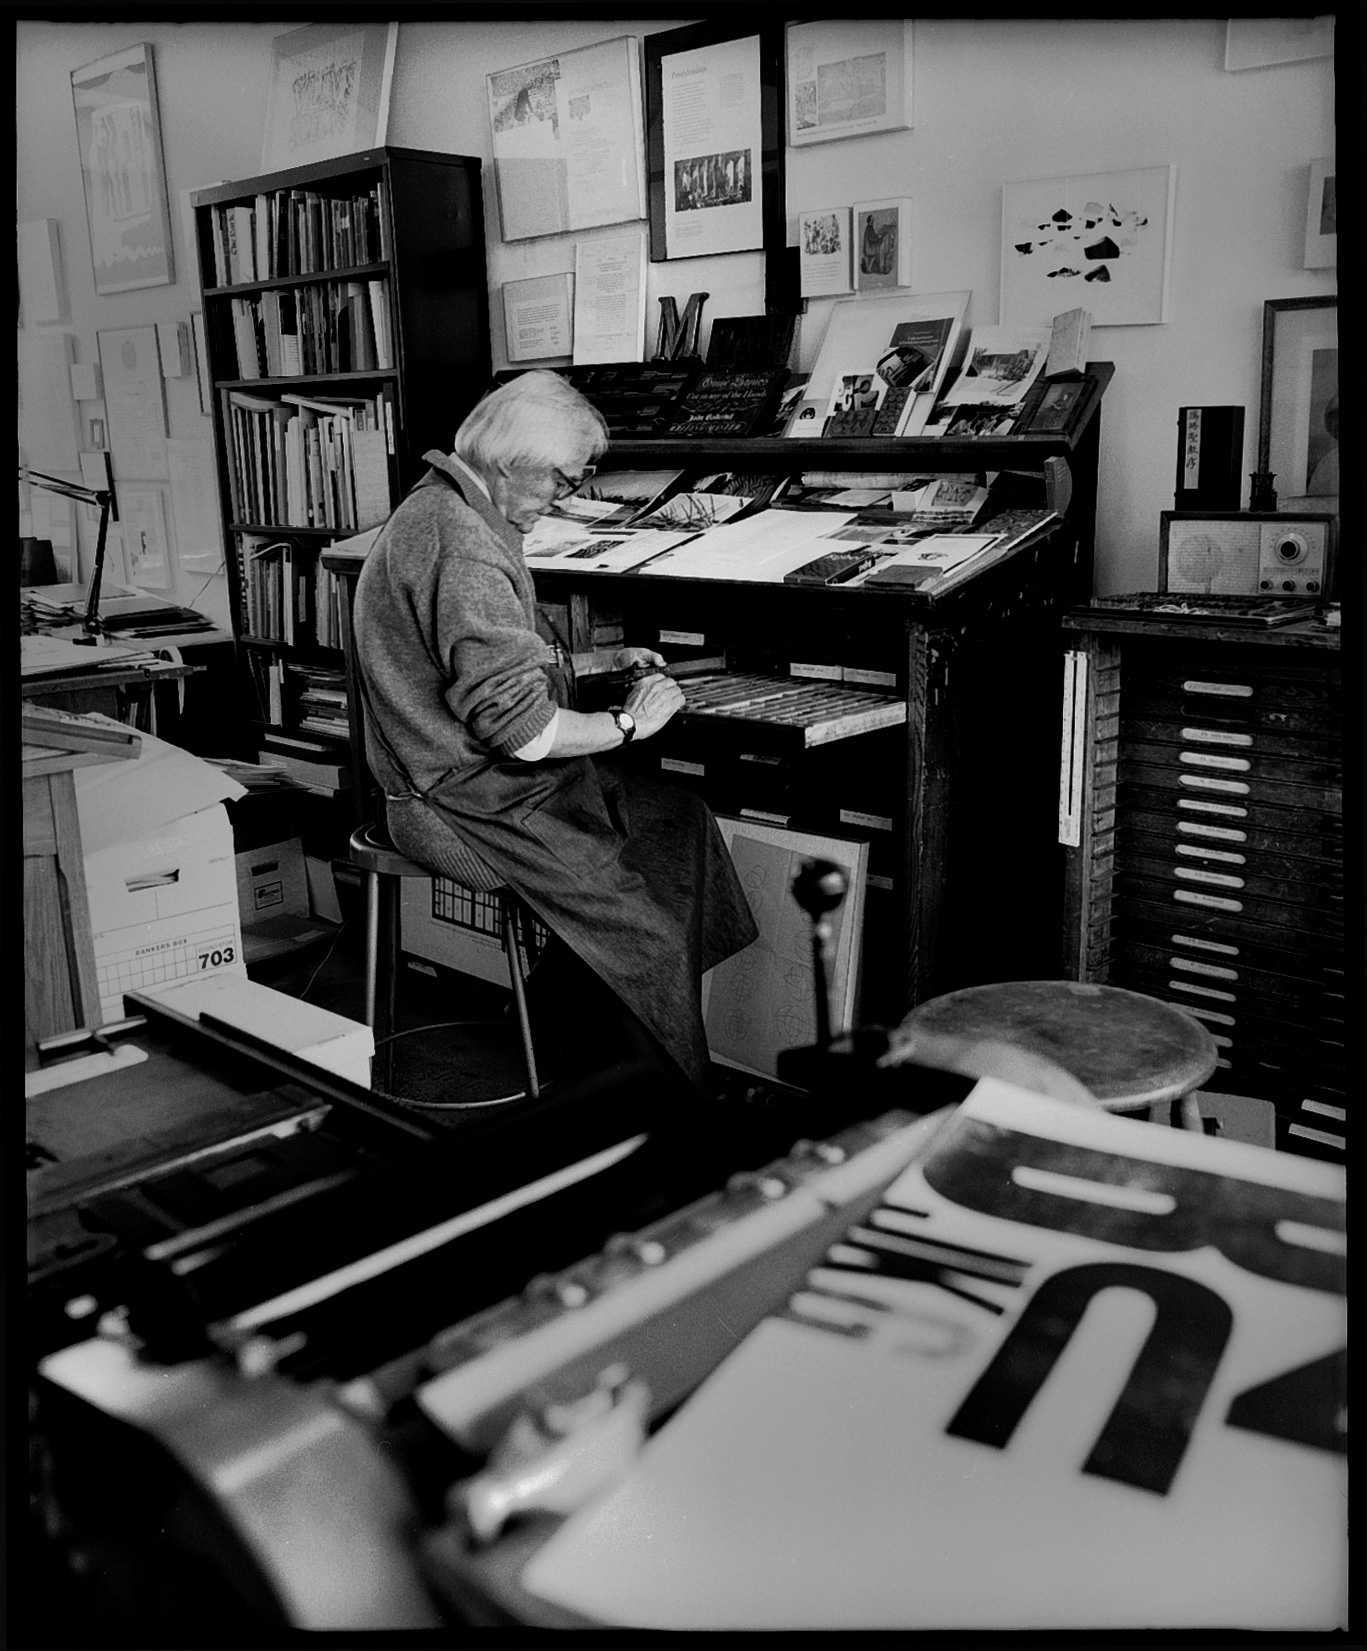 Stauffacher composing type at Greenwood Press. Photo: Dennis Letbetter, 1999.